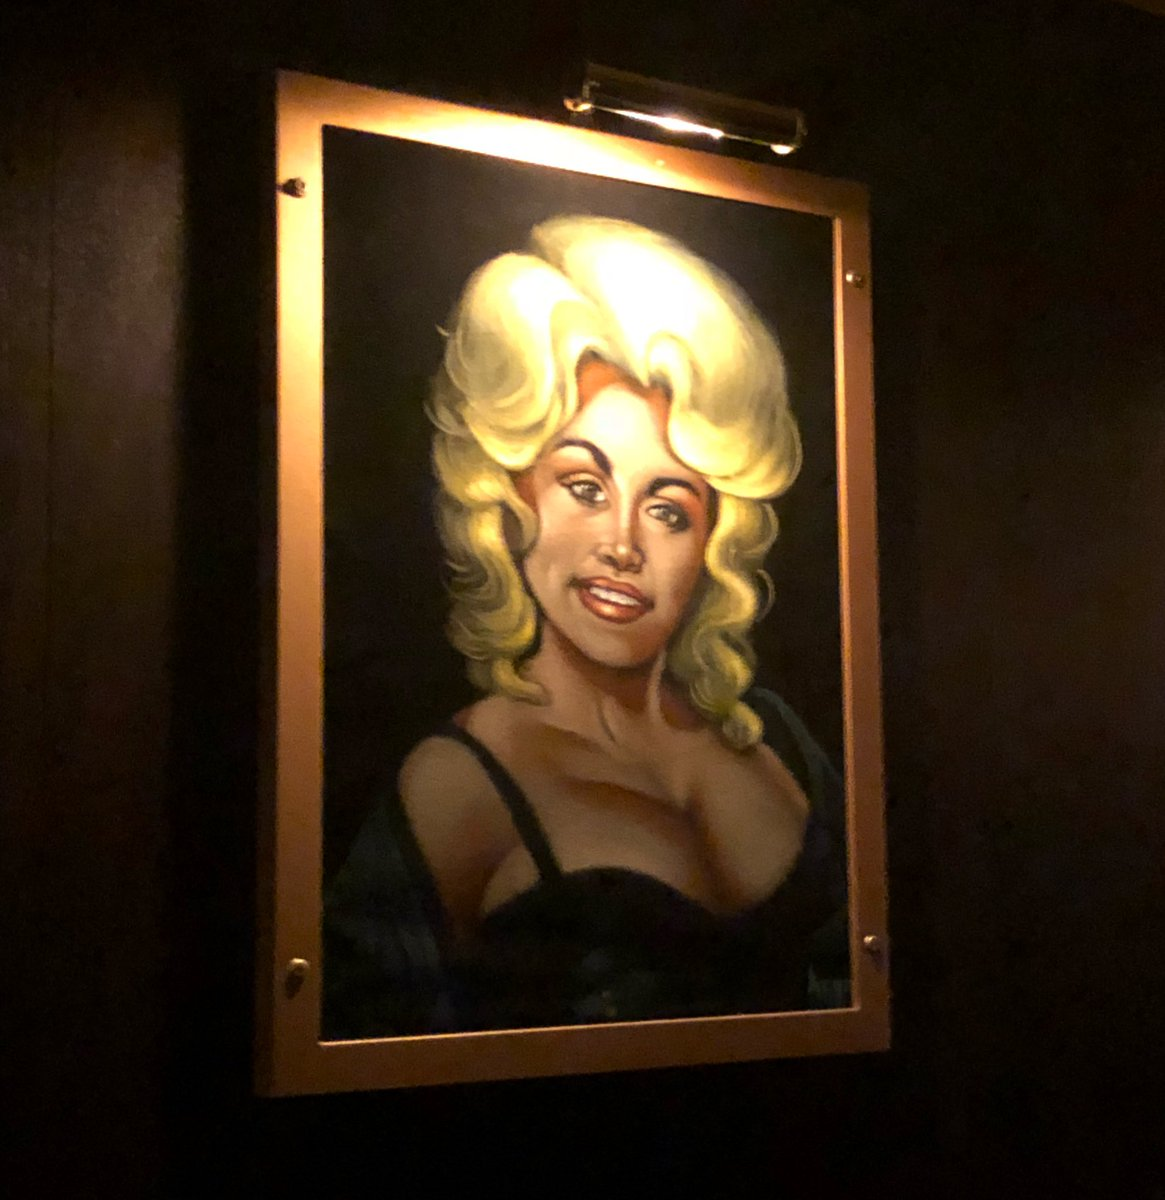 eric hu on twitter there s this painting at this bar and i can t